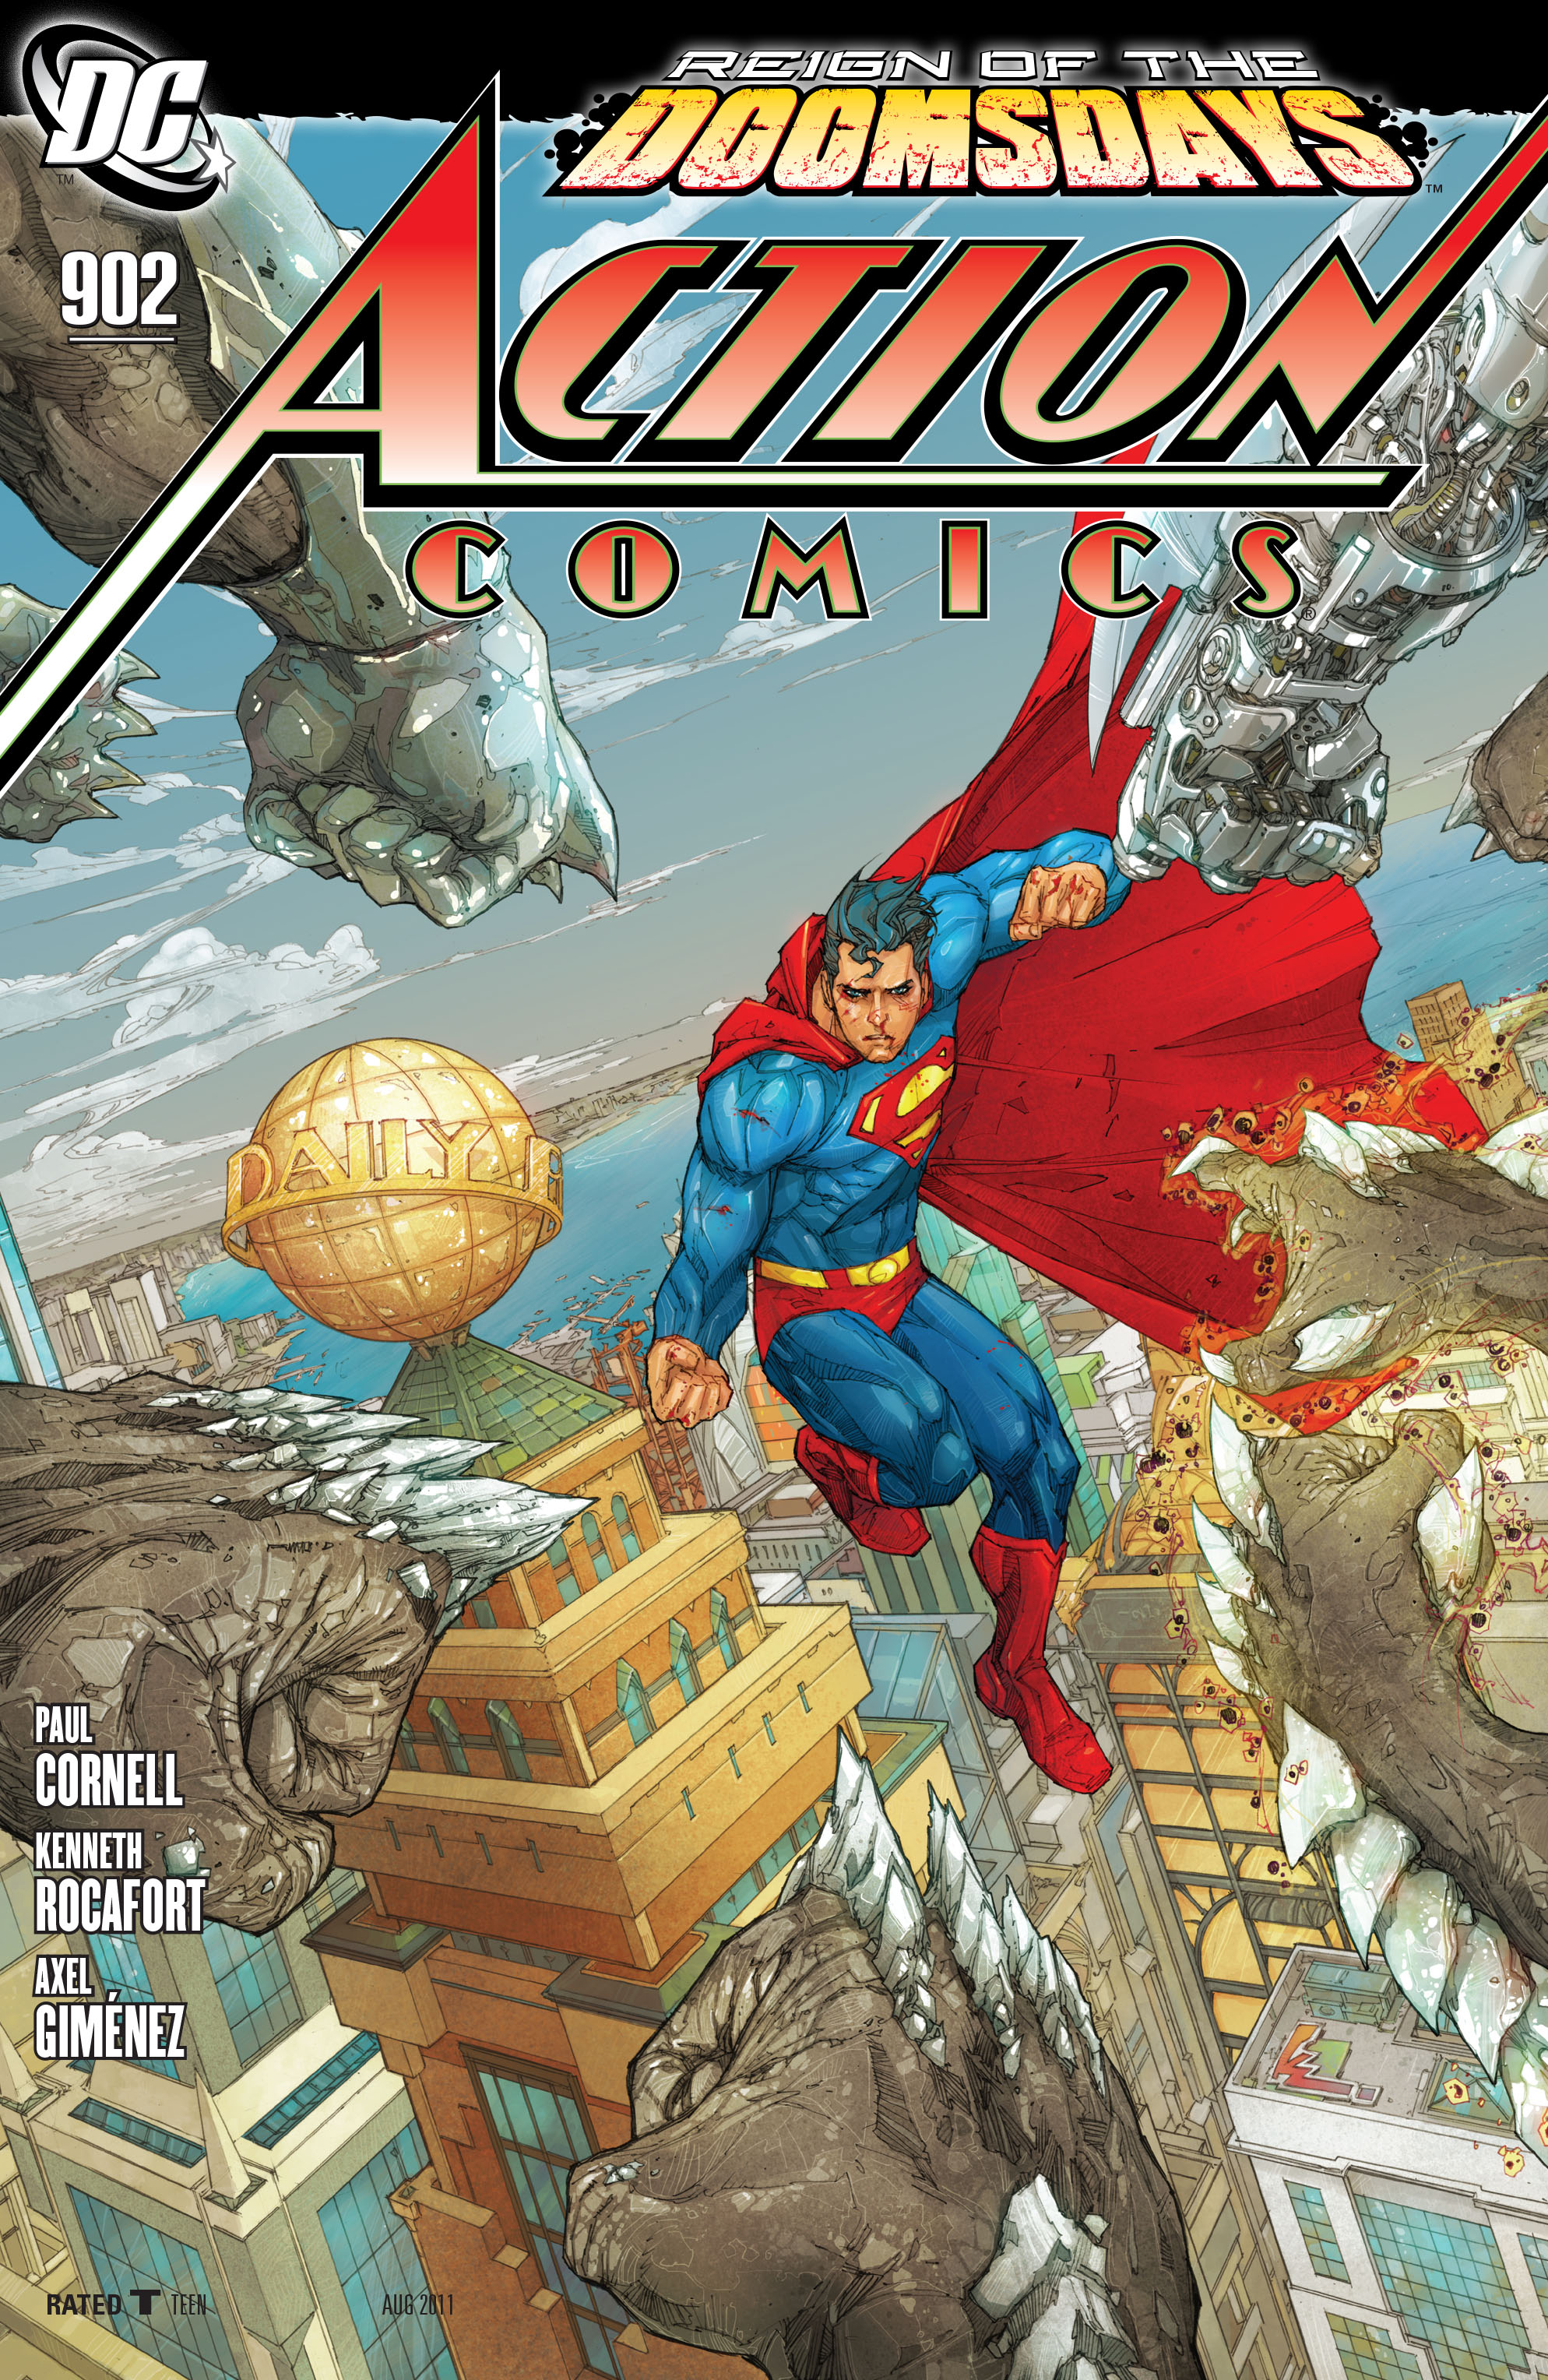 Read online Action Comics (1938) comic -  Issue #902 - 1